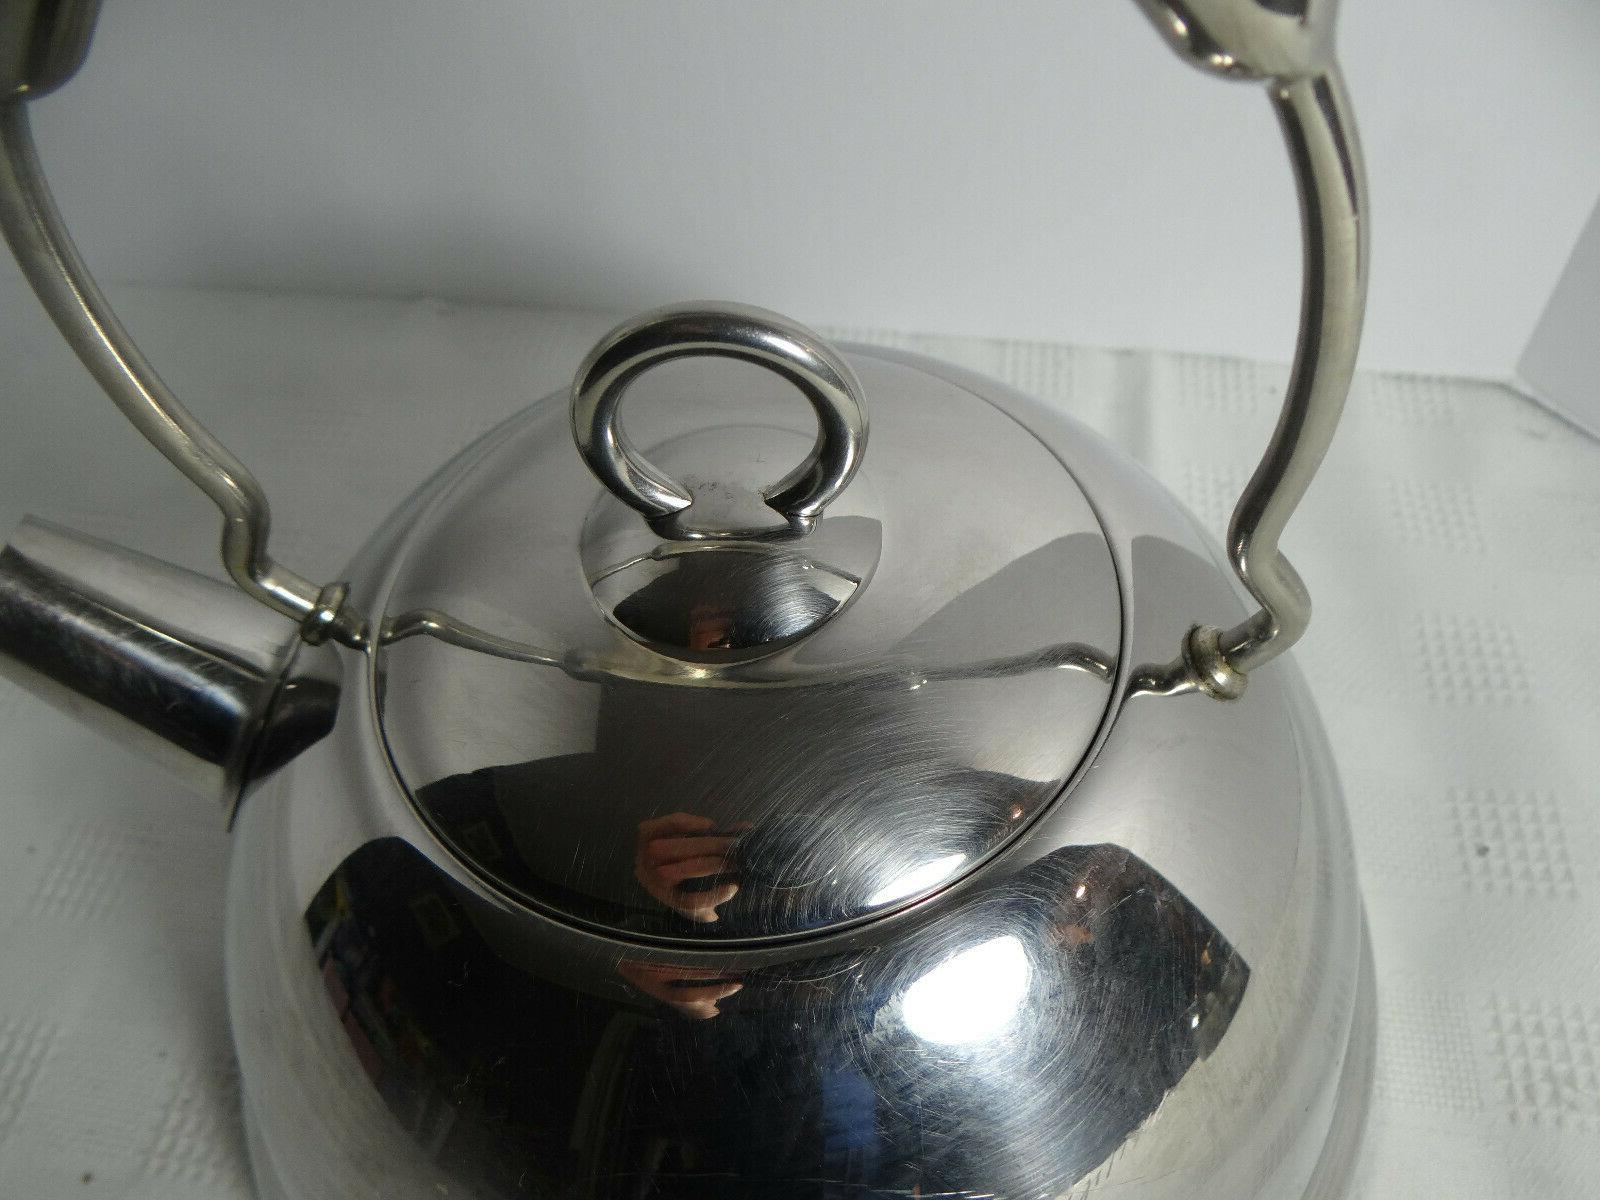 Vintage Copco Kettle Made in